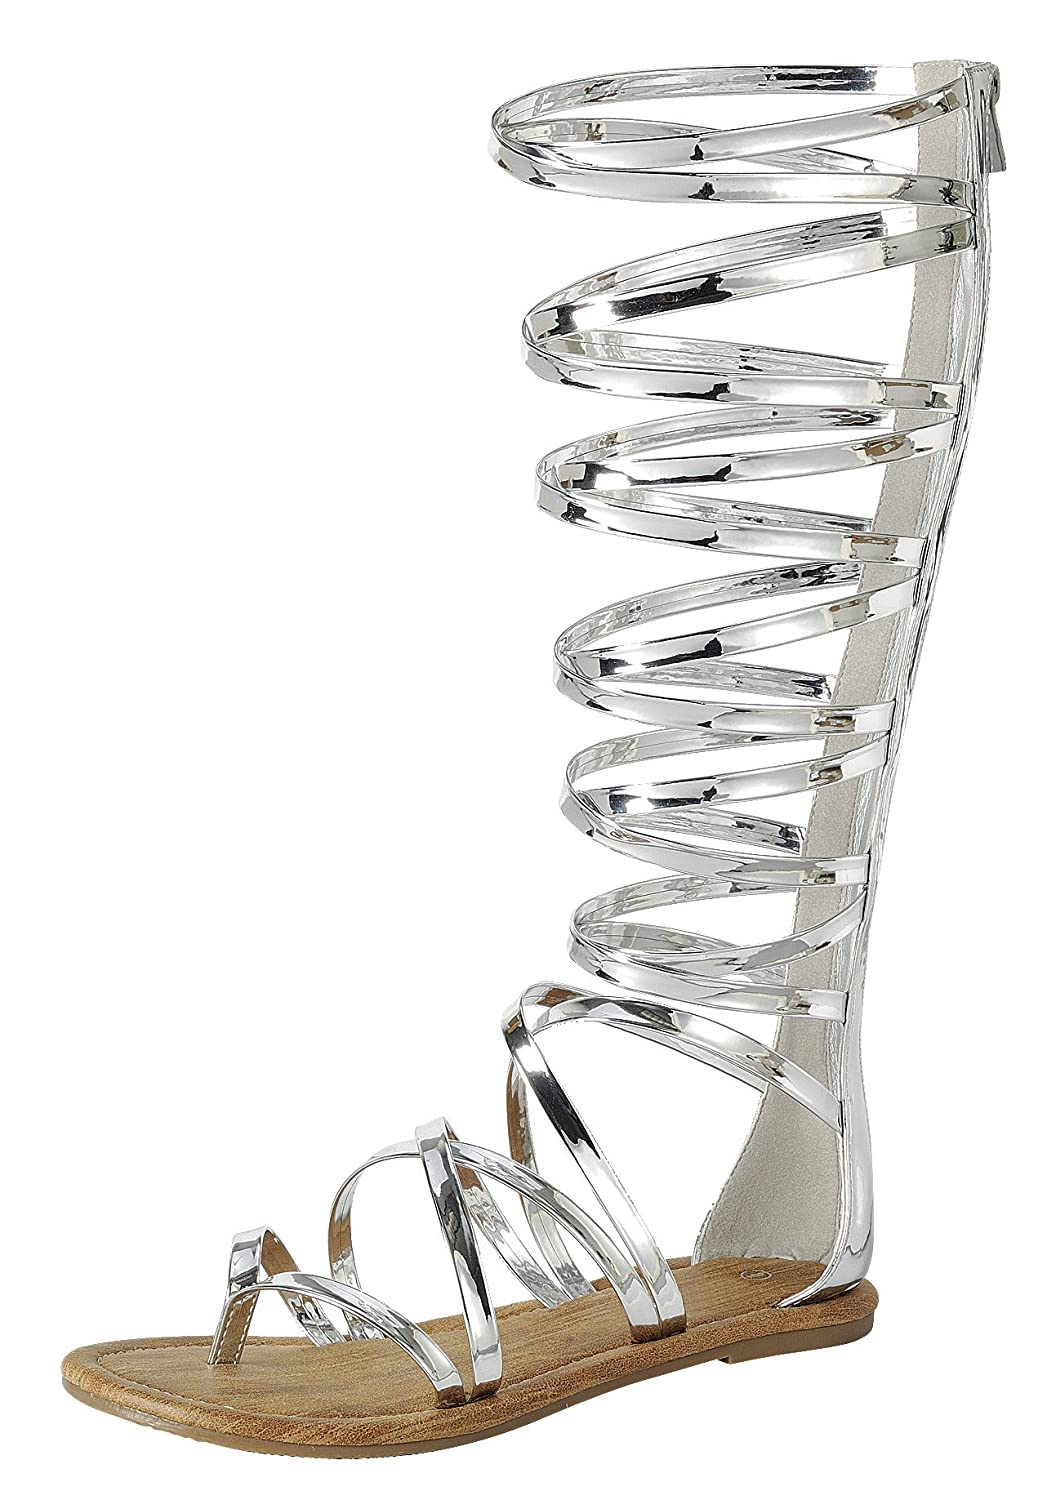 Women's Silver Gladiator Open Crisscross Strappy Knee-High Flat Sandals - DeluxeAdultCostumes.com